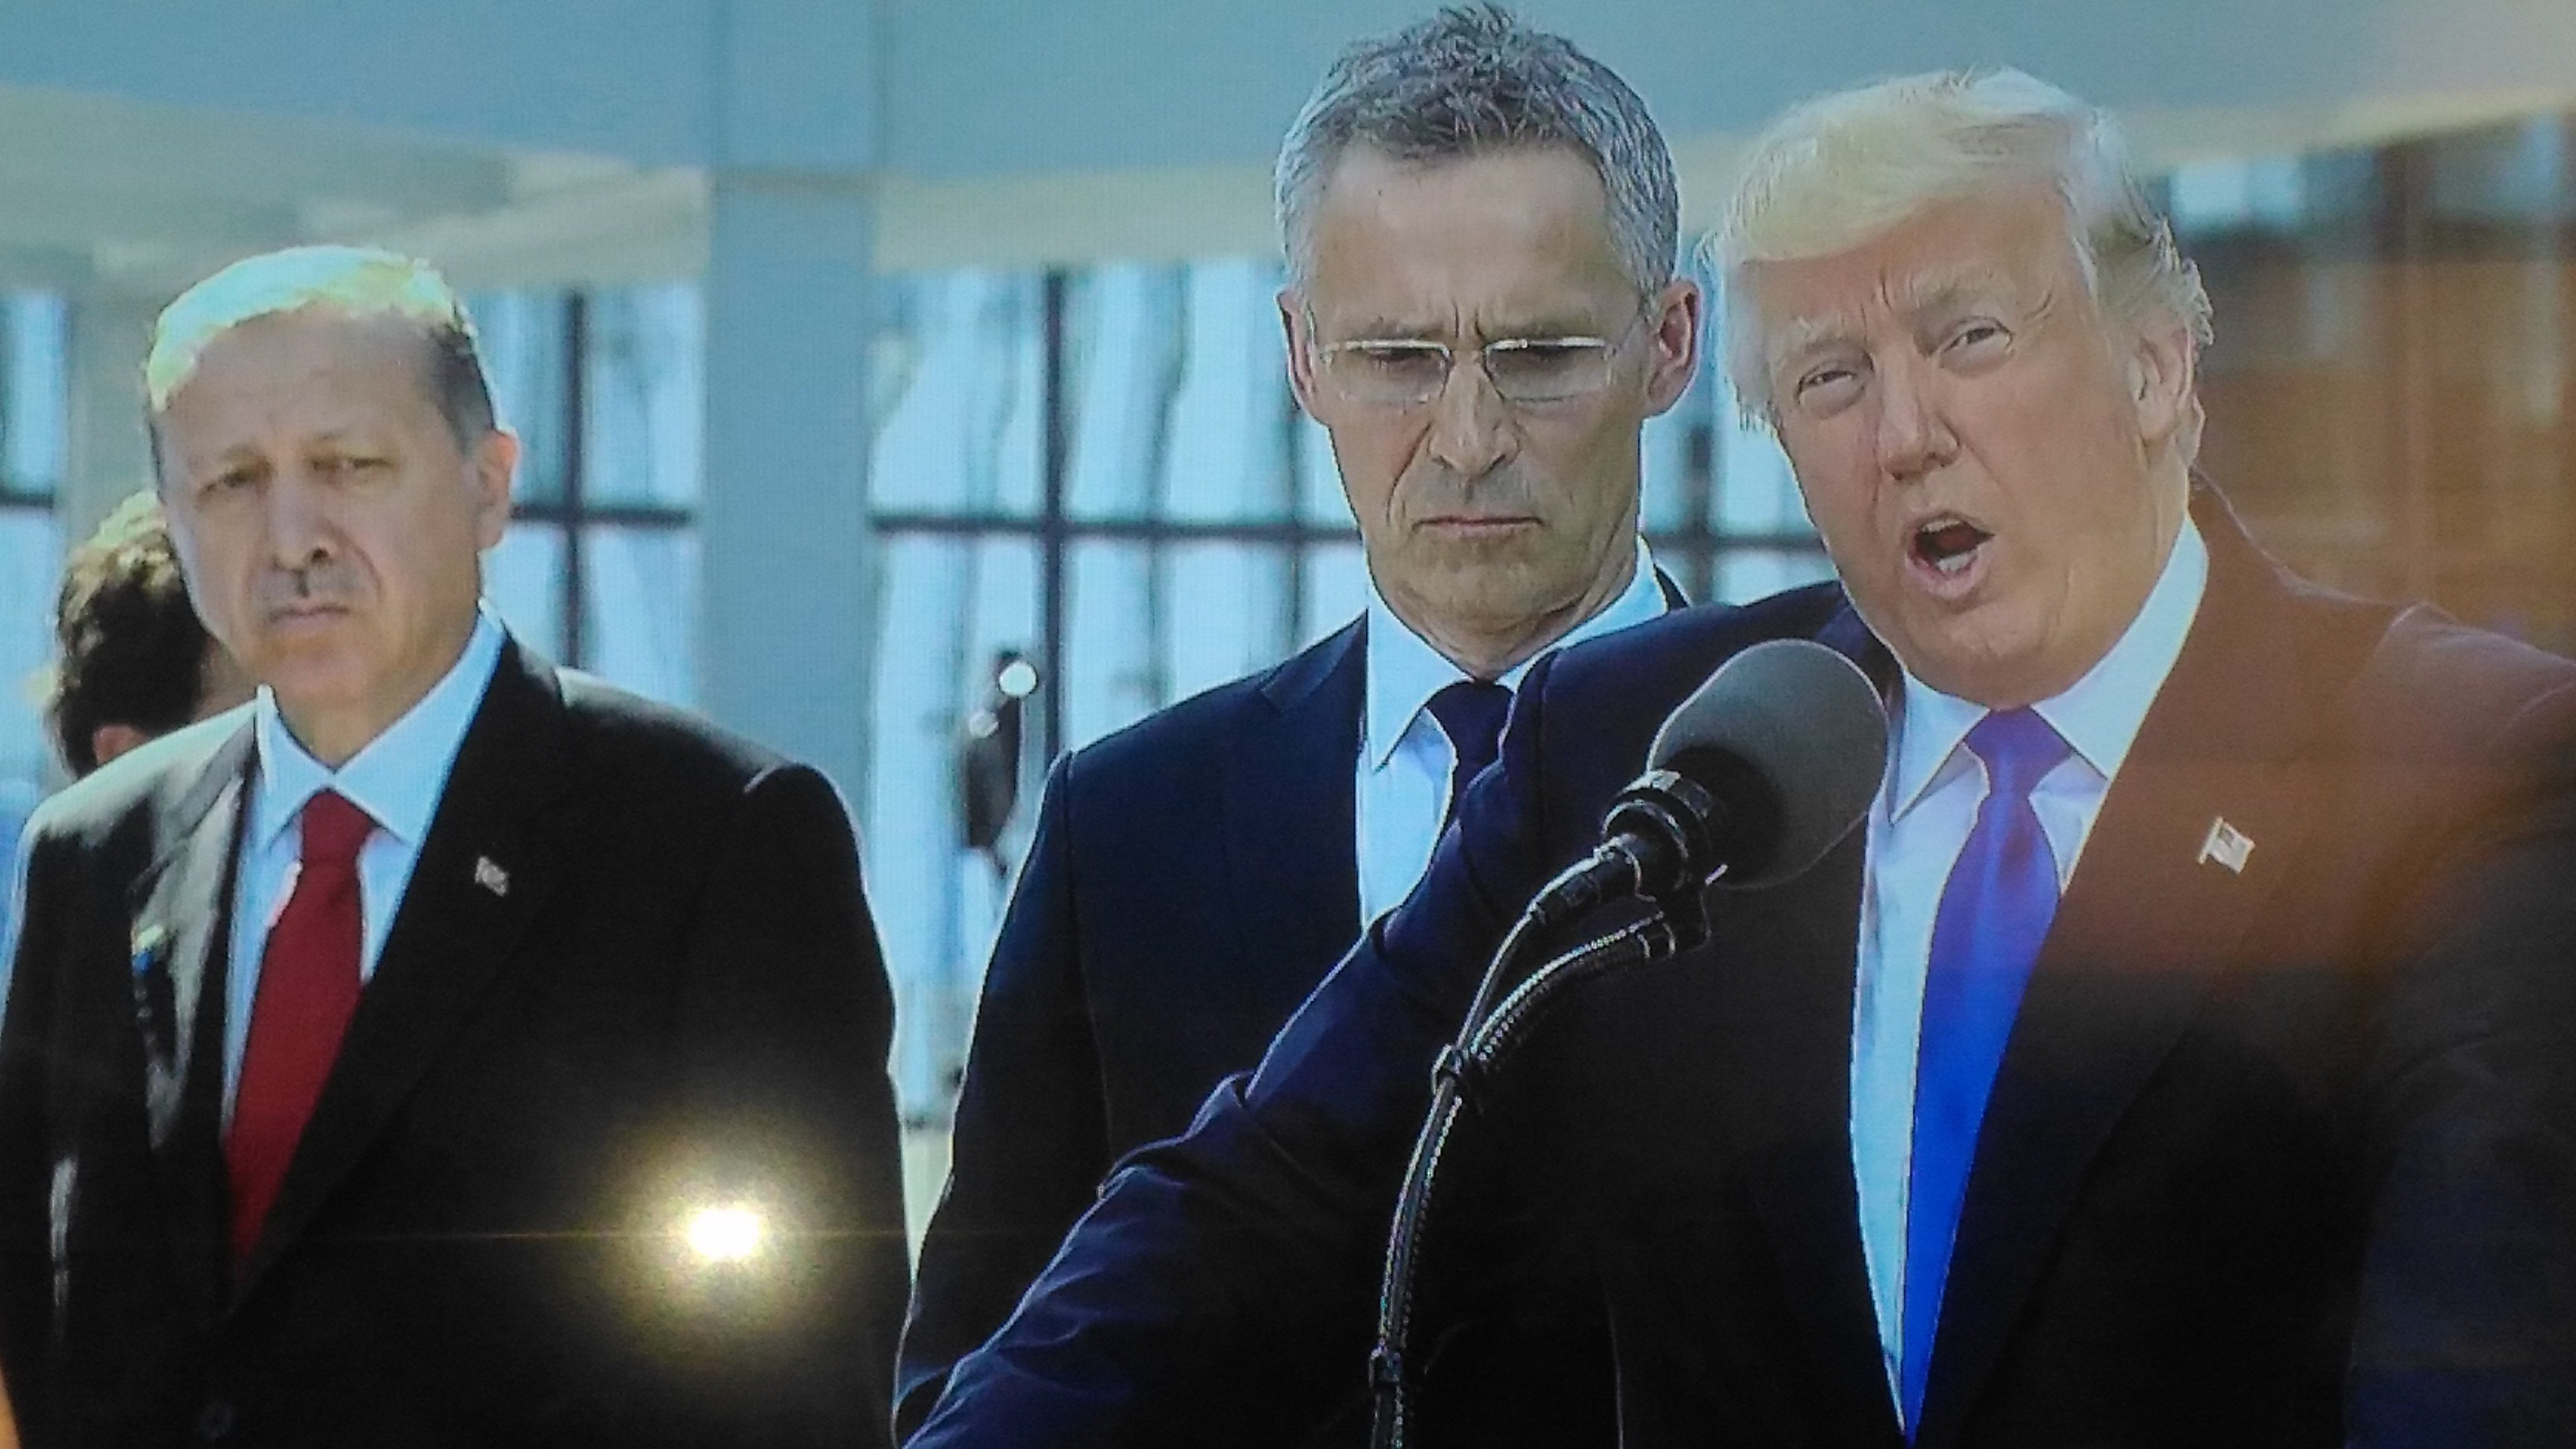 Trump insists on fair burden-sharing in NATO